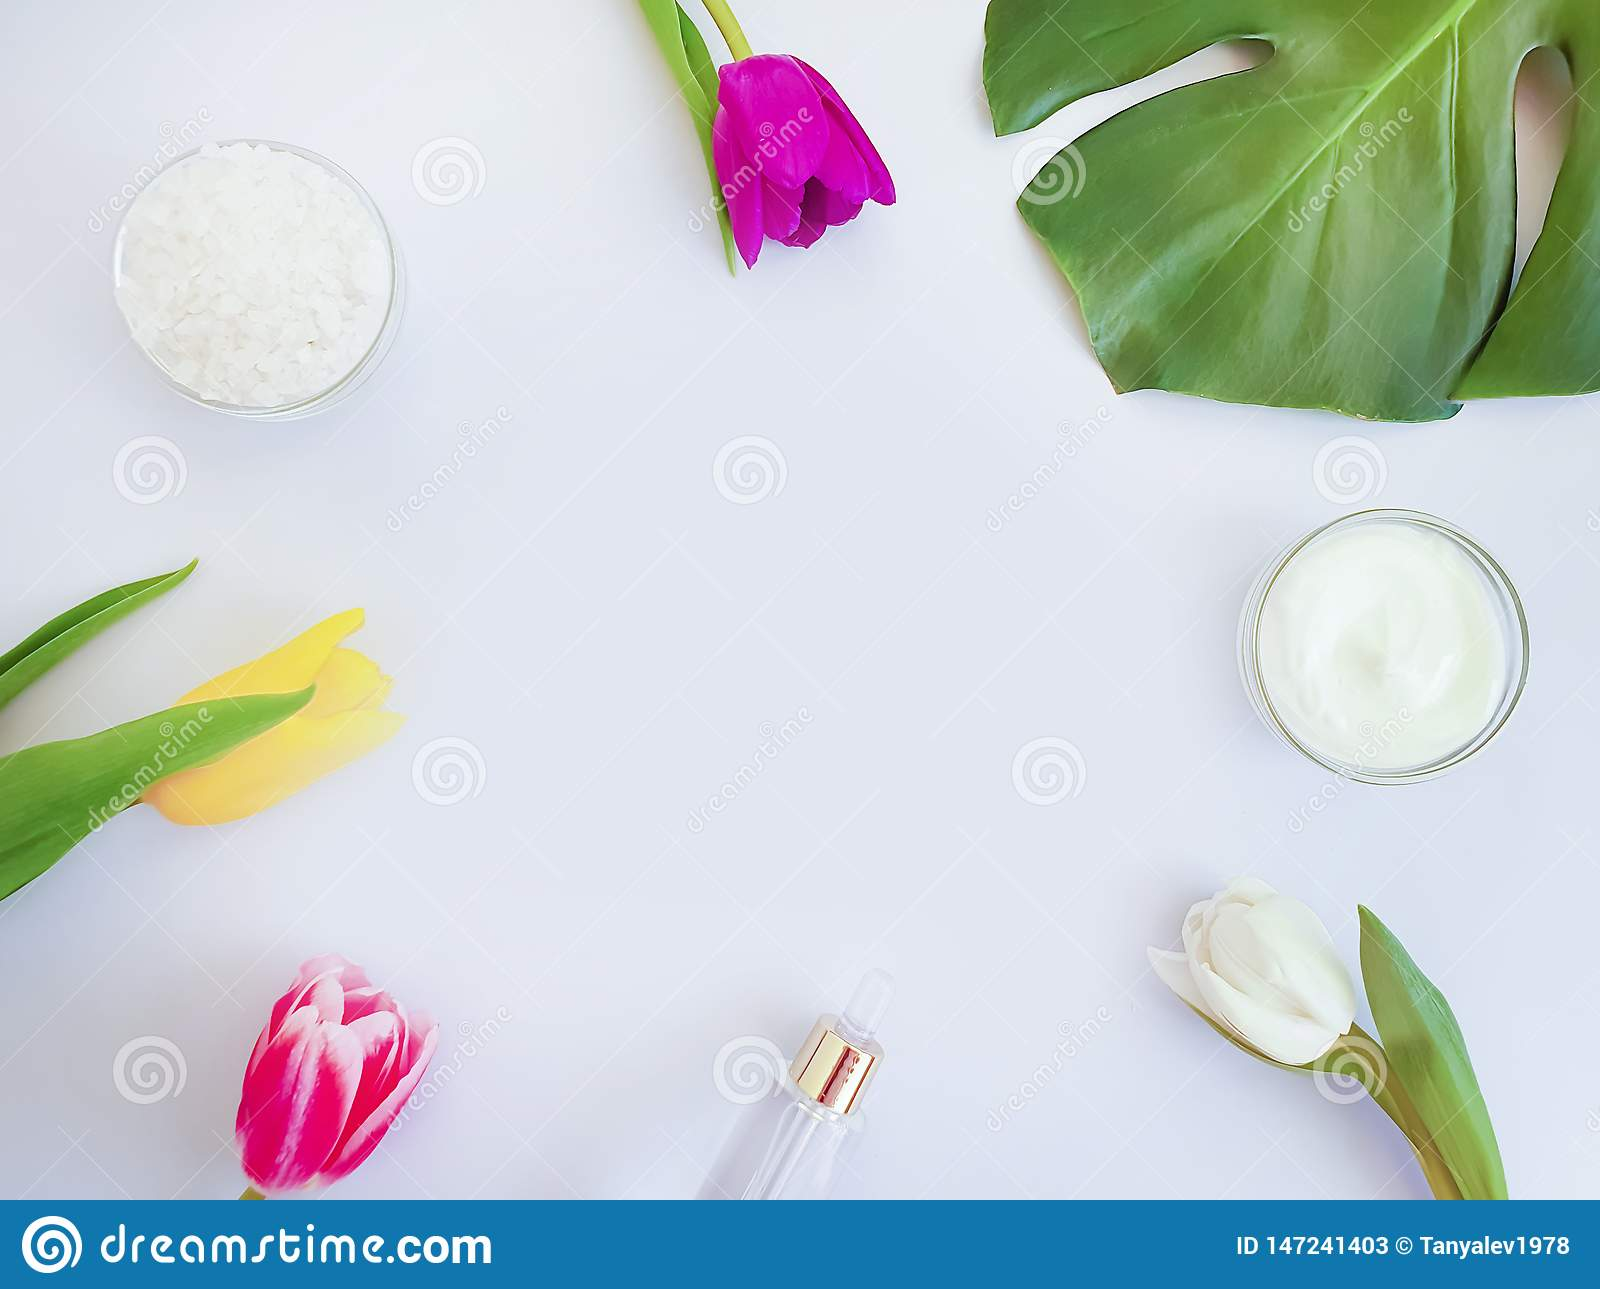 Cosmetic cream essence, flower tulip, natural springtime product monstera leaf salt on a colored background